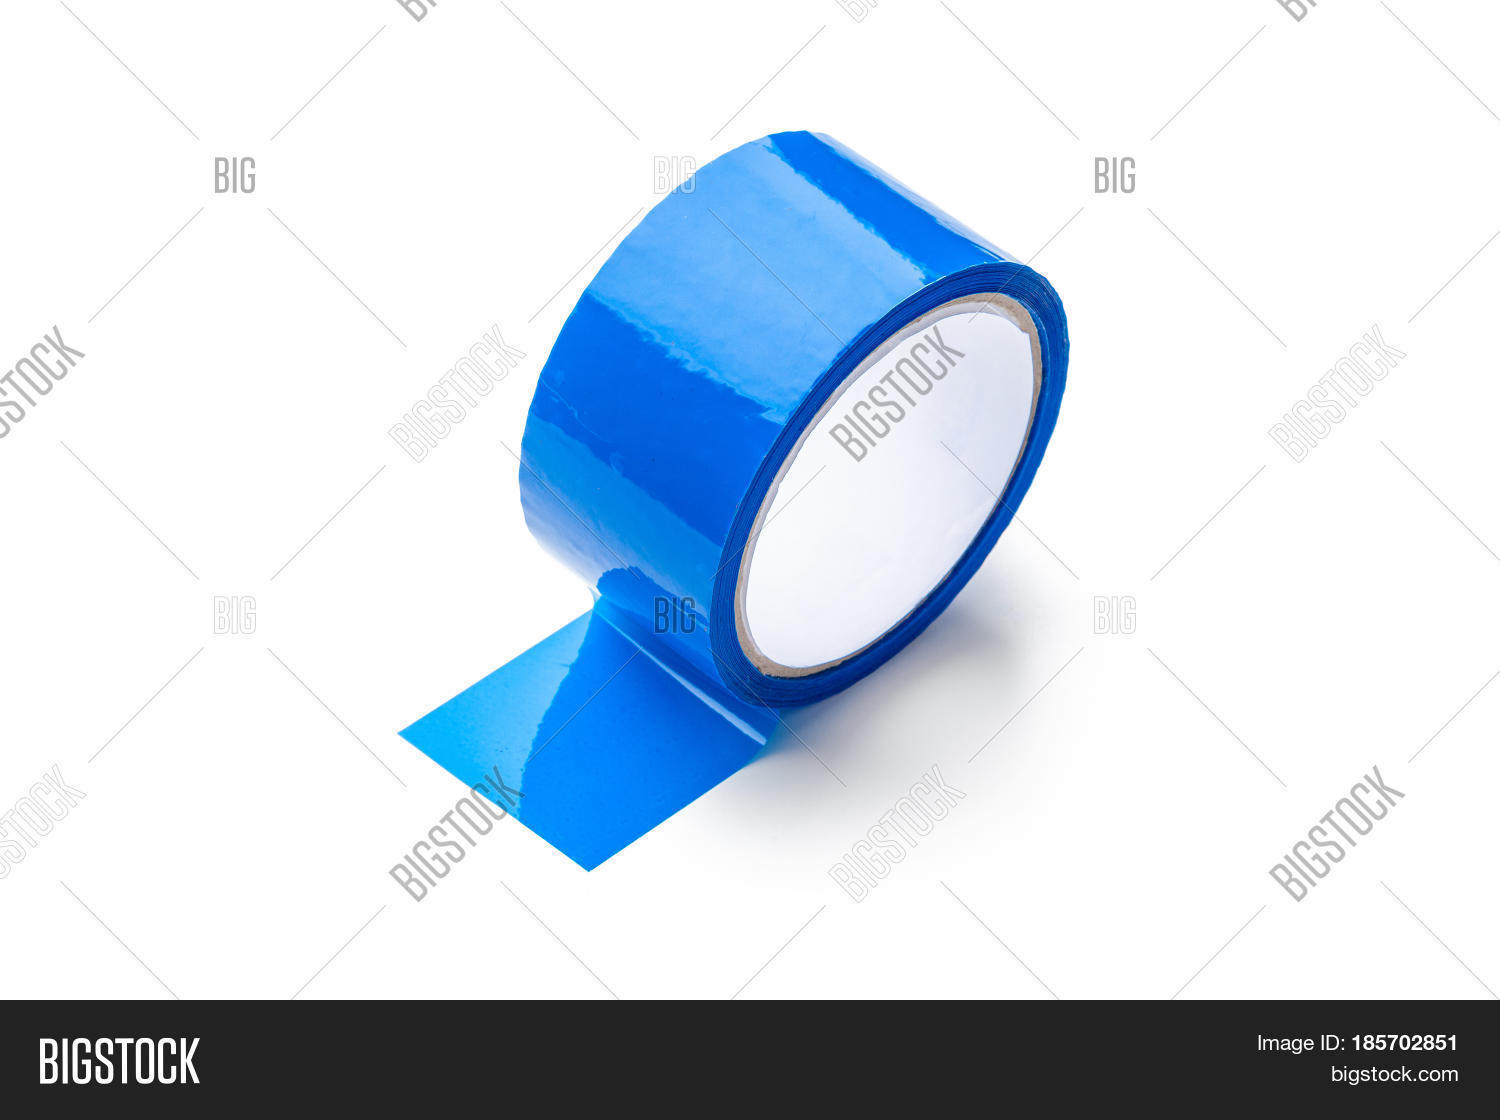 colored tape large image photo free trial bigstock